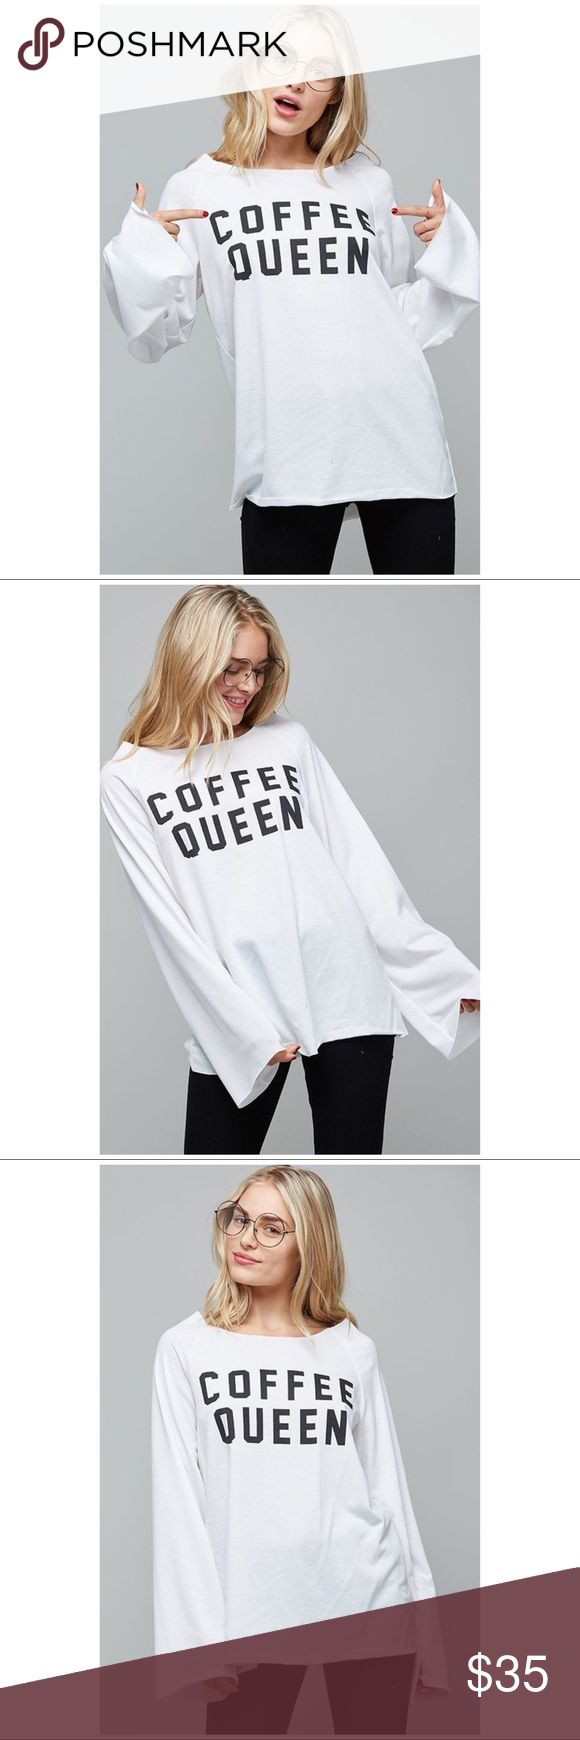 ☕️ Coffee Queen French Terry Long Sleeve Top Pre-Order will ship in end of Oct. A loose-fit top featuring a raw-cut edge neck and hem lines, graphic and a long bell sleeve. This top is made with a medium weight french terry fabric that is very soft and drapes beautifully. Tops Tees - Long Sleeve